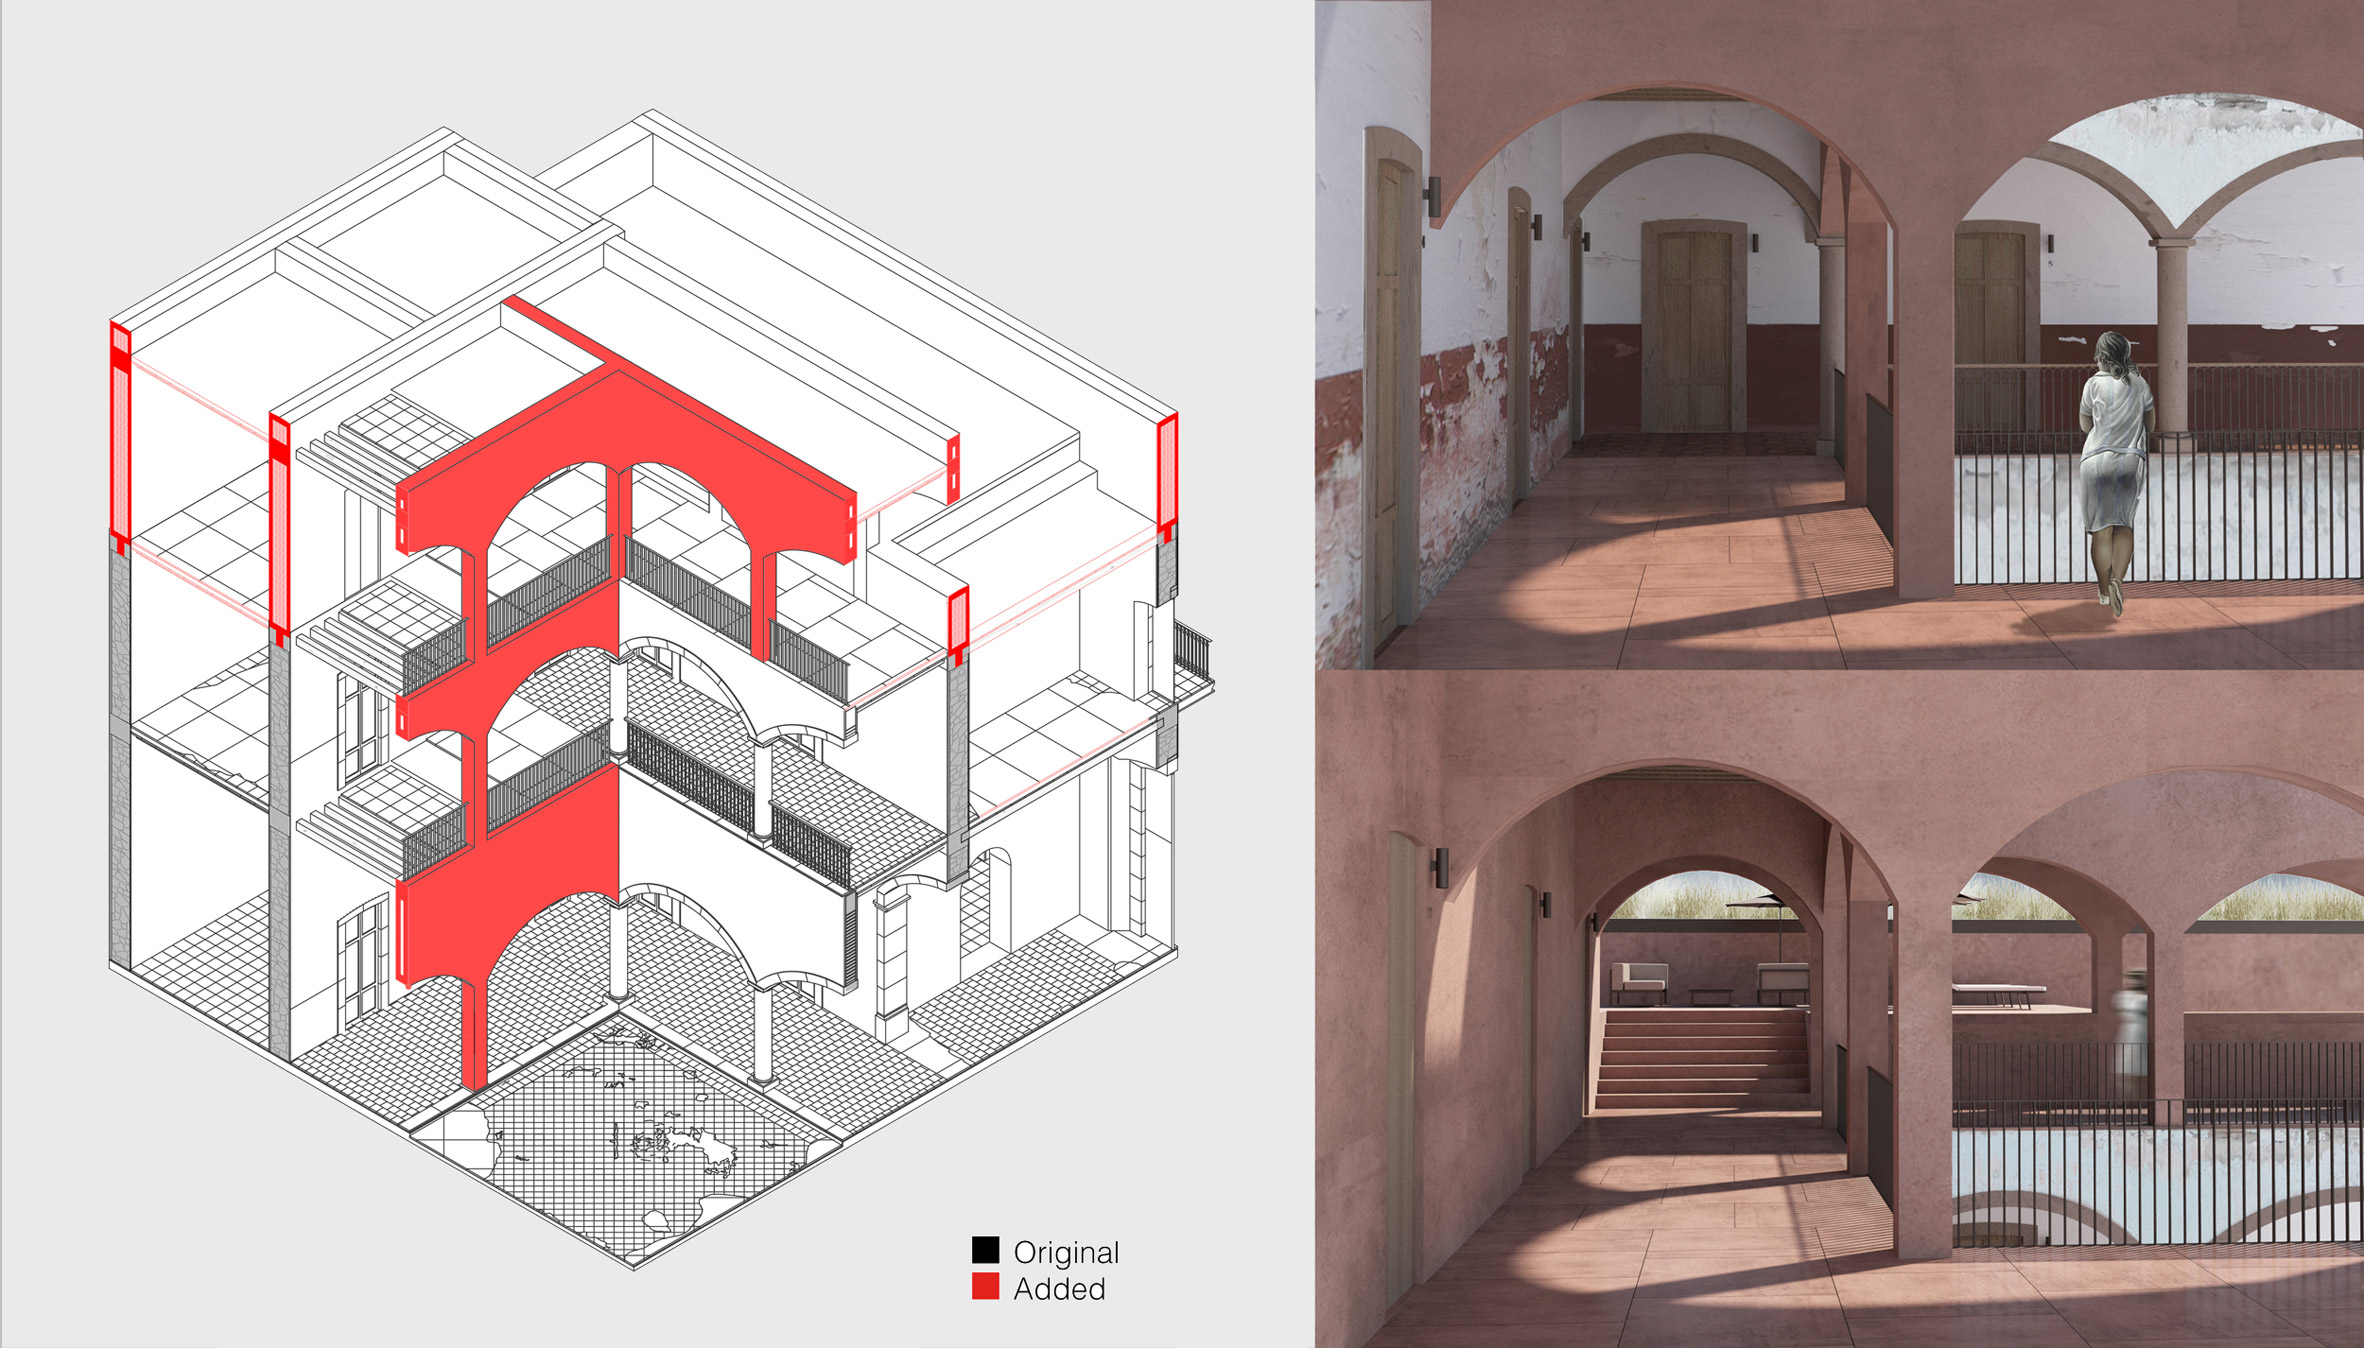 Historical Building Additions According to Chipperfield by Lorena Esquivel Maldonado